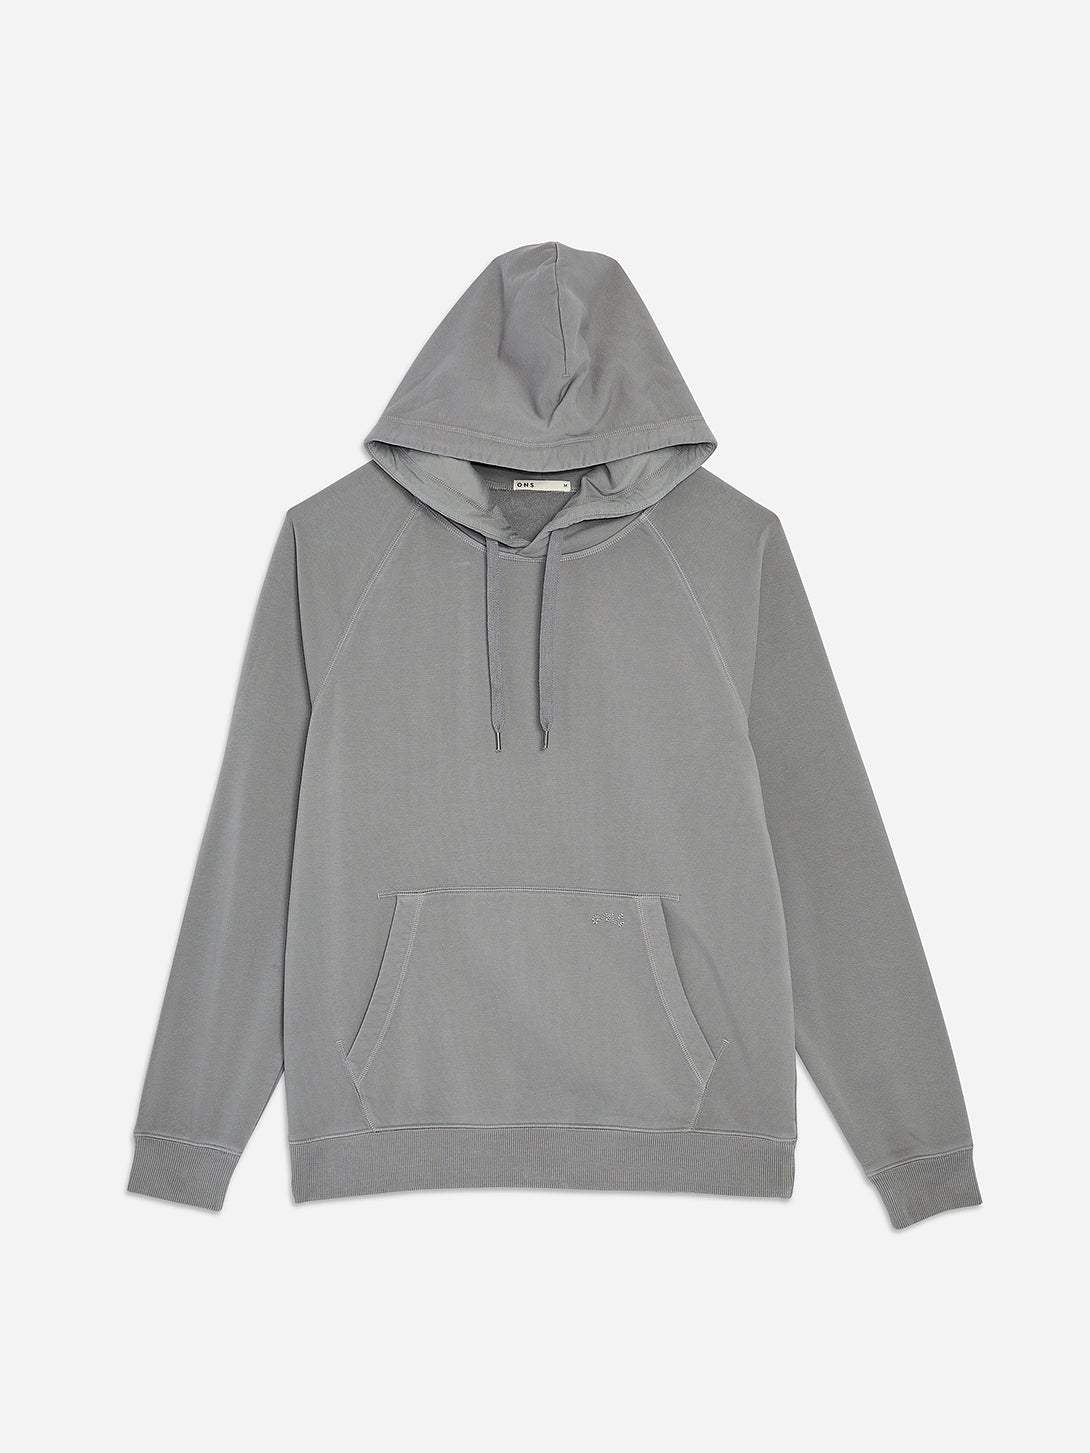 ONS Clothing Men's Harper Hoodie in Charcoal